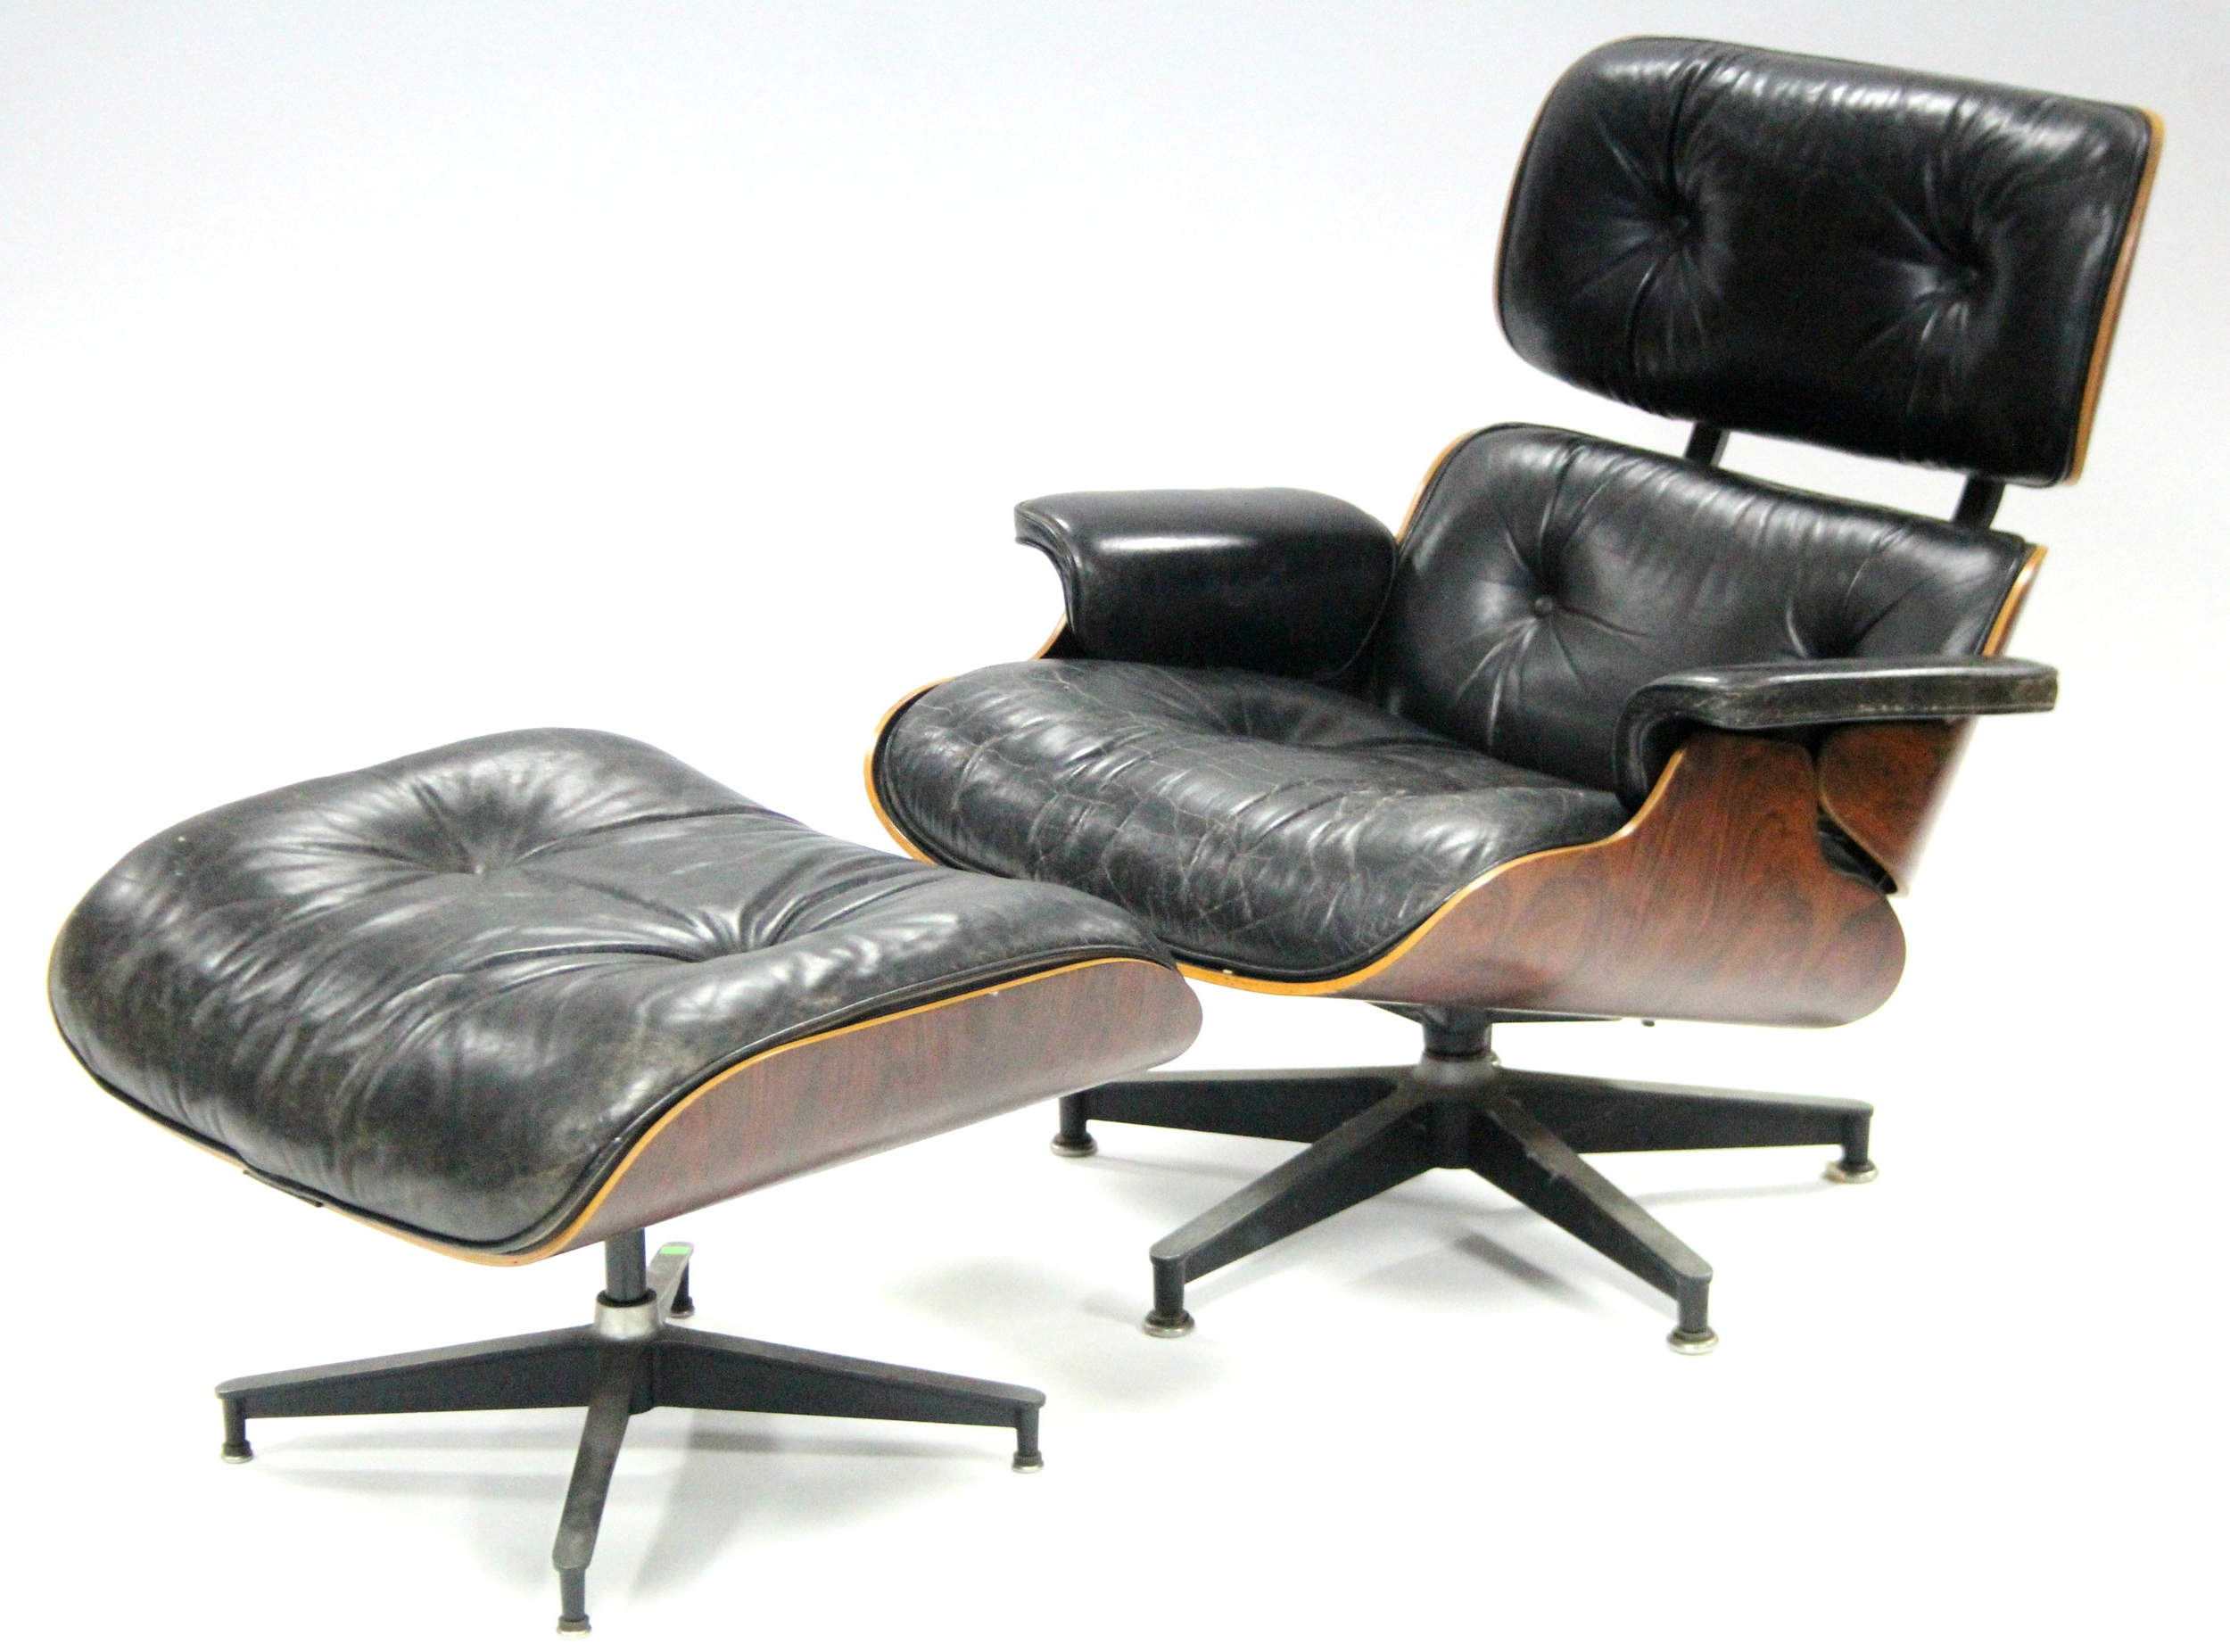 Sold For £3,500  Charles & Ray Eames '670' lounge chair & ottoman.